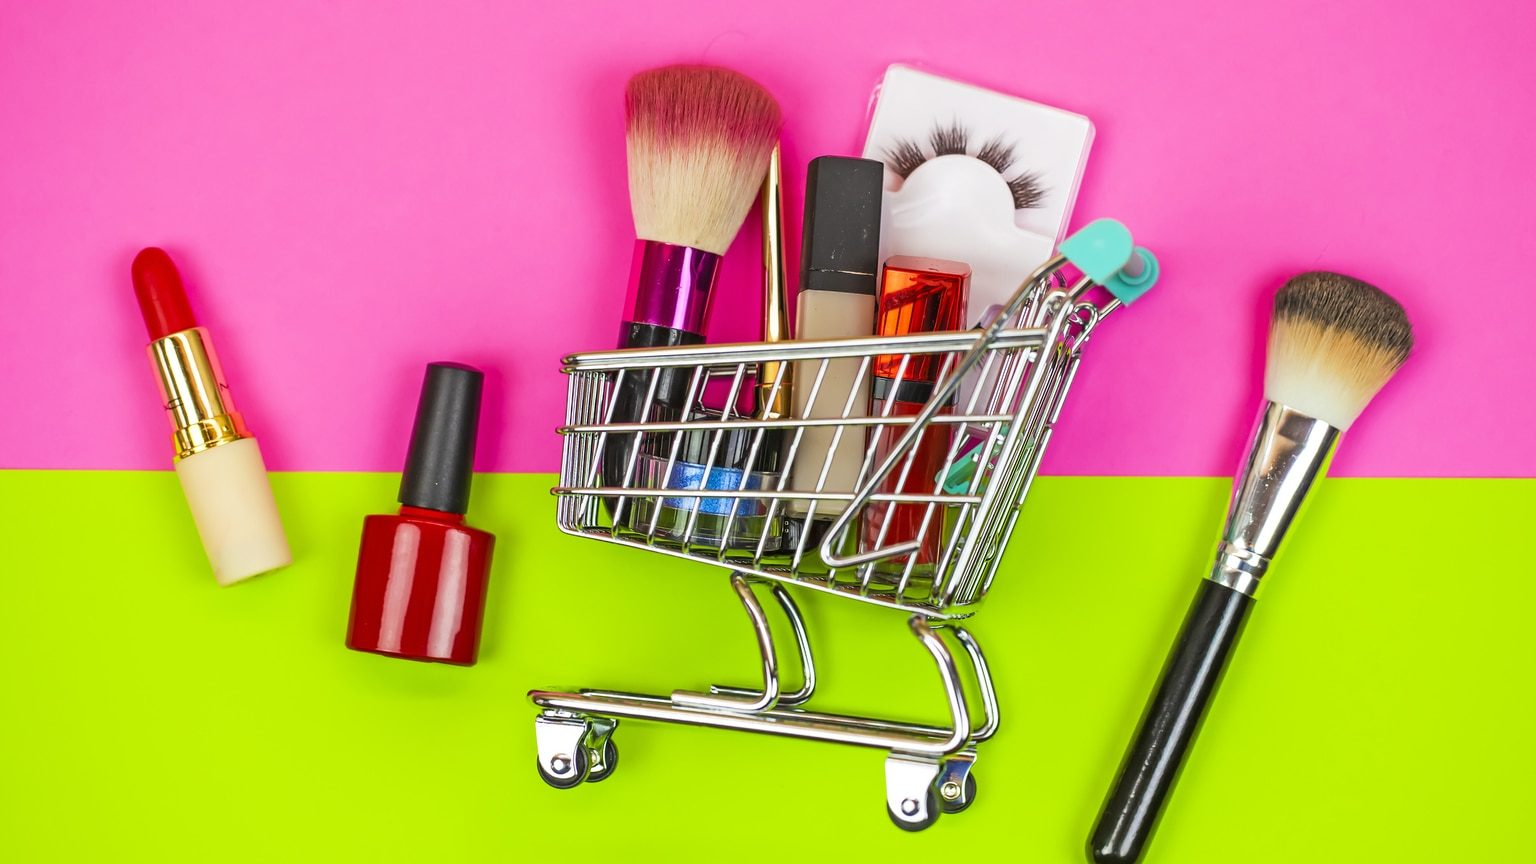 Grocery cart with makeup on pink and lime green background